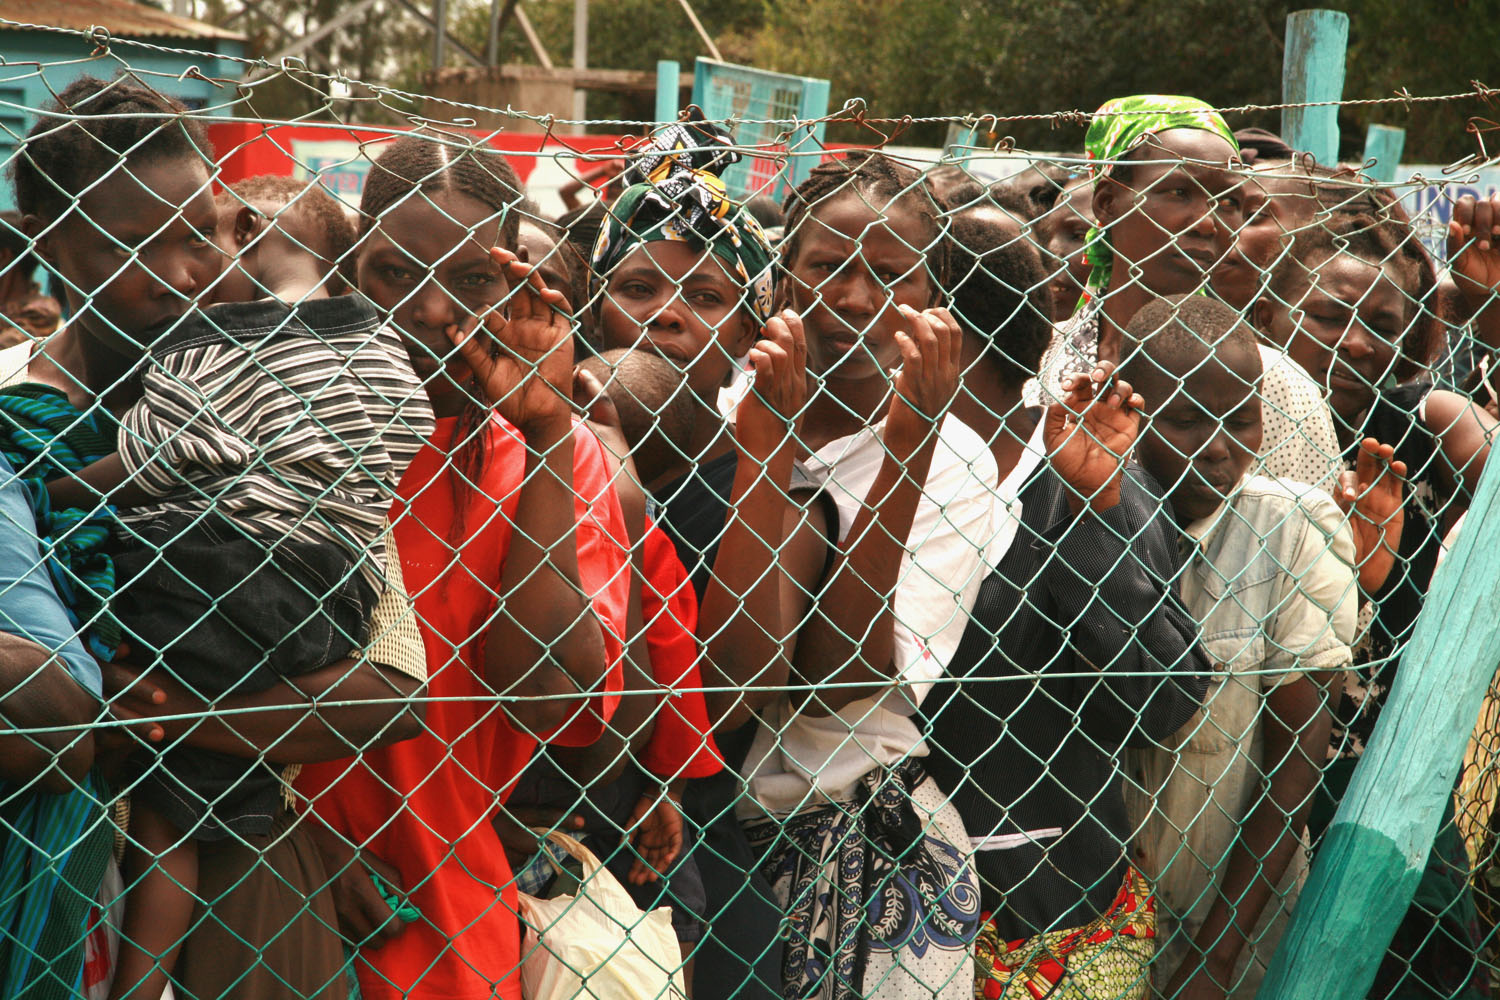 Women line up to receive relief food at the Nairobi show grounds, Kenya. January 2008. The effects of post-election violence in Kenya continue to reverberate throughout the country. An estimated 250,000 people have fled their homes.